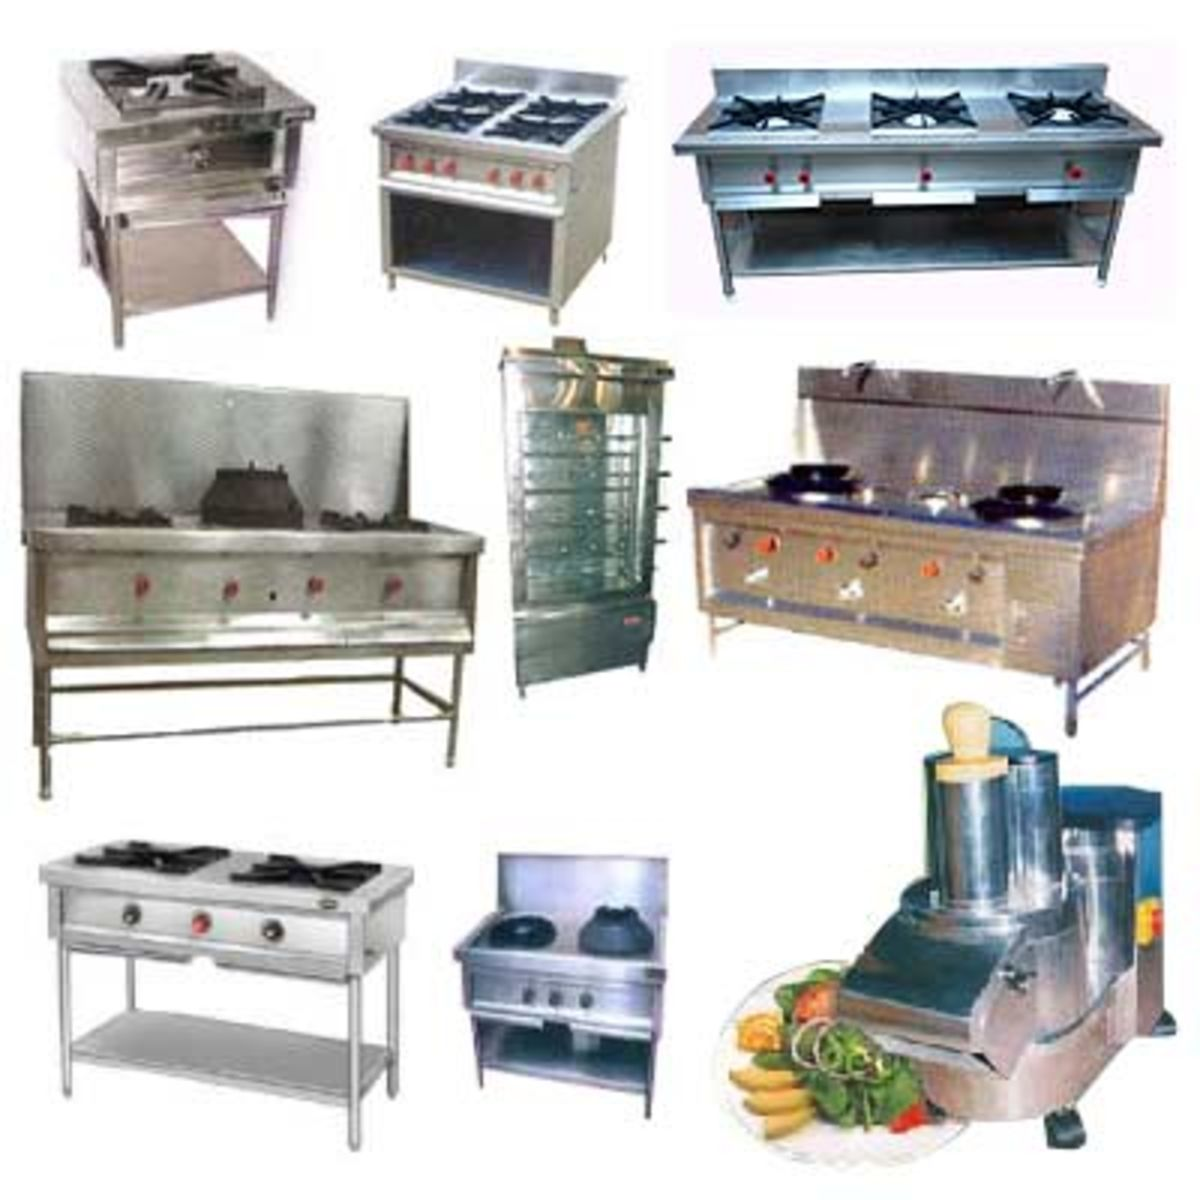 Top 5 Commercial Kitchen Equipment Suppliers in Australia  A Listly List